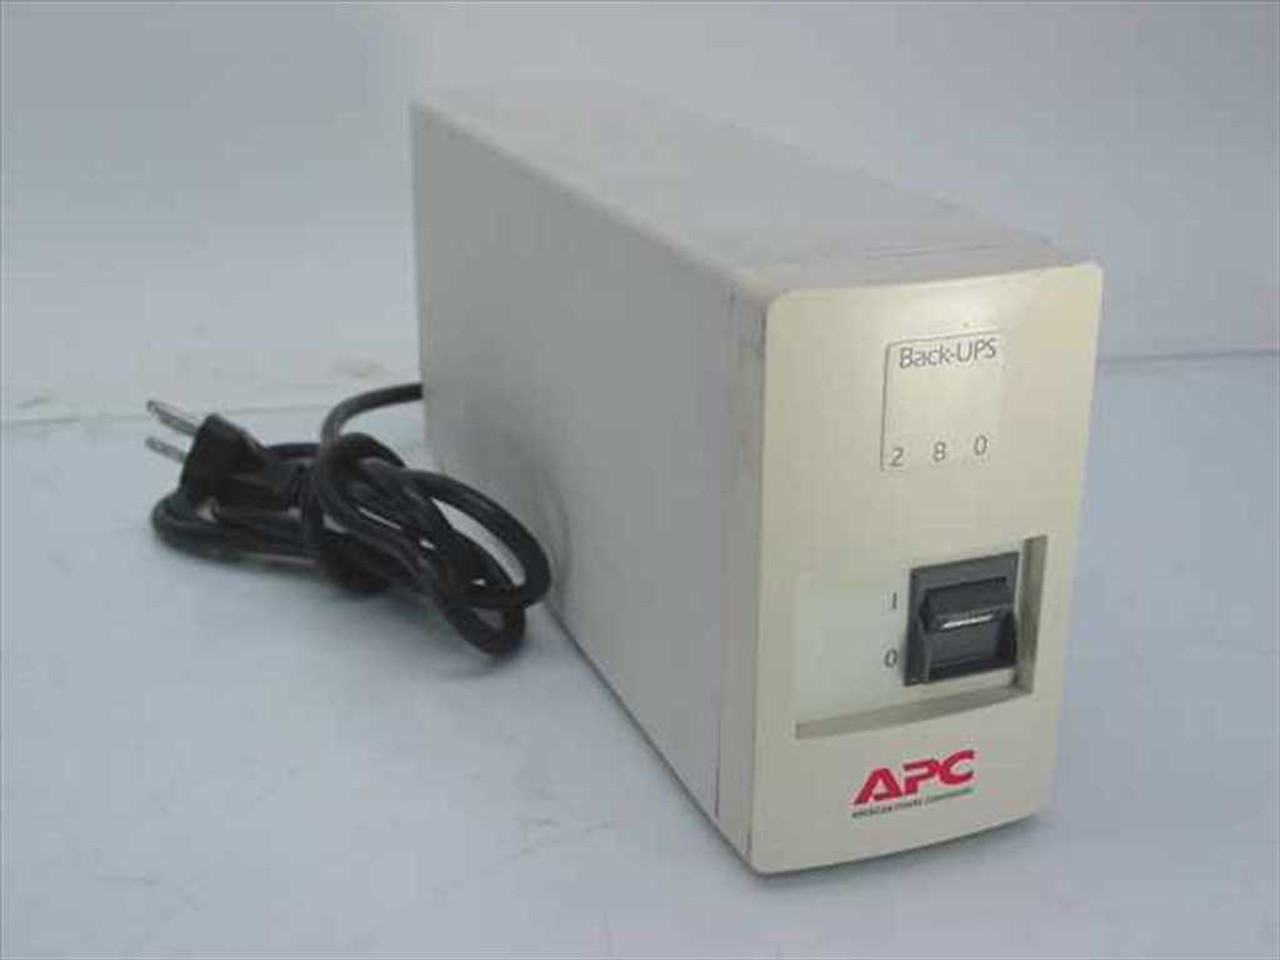 apc bp280s 280 va back ups pro 280 recycledgoods com apc 280 va back ups 280 ups bk280b no battery included 280